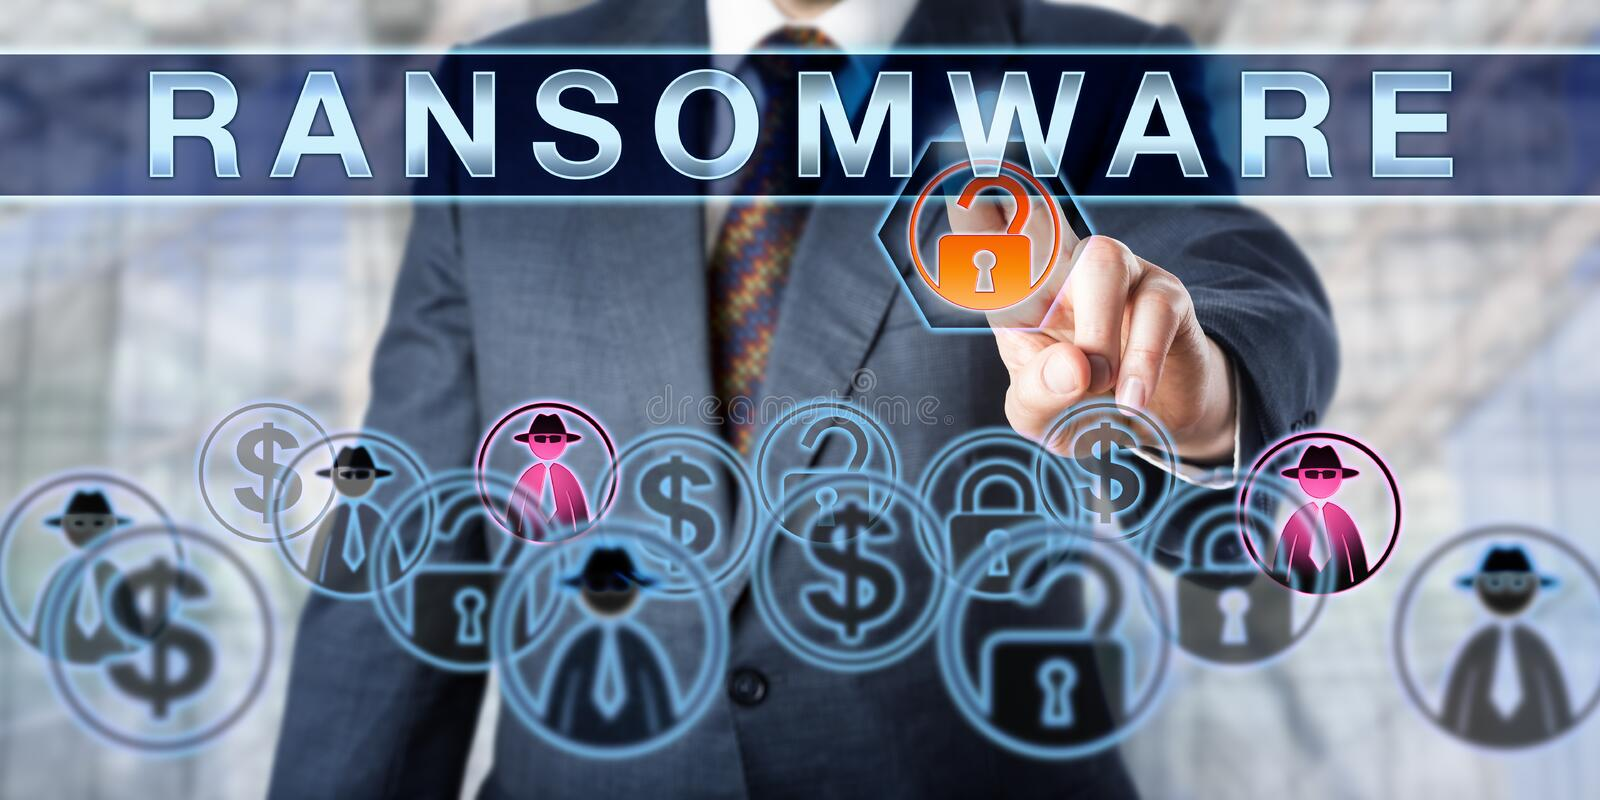 Corporate Manager Touching RANSOMWARE. Corporate manager is touching RANSOMWARE on an interactive control screen. Information security concept for the crime of royalty free stock photography